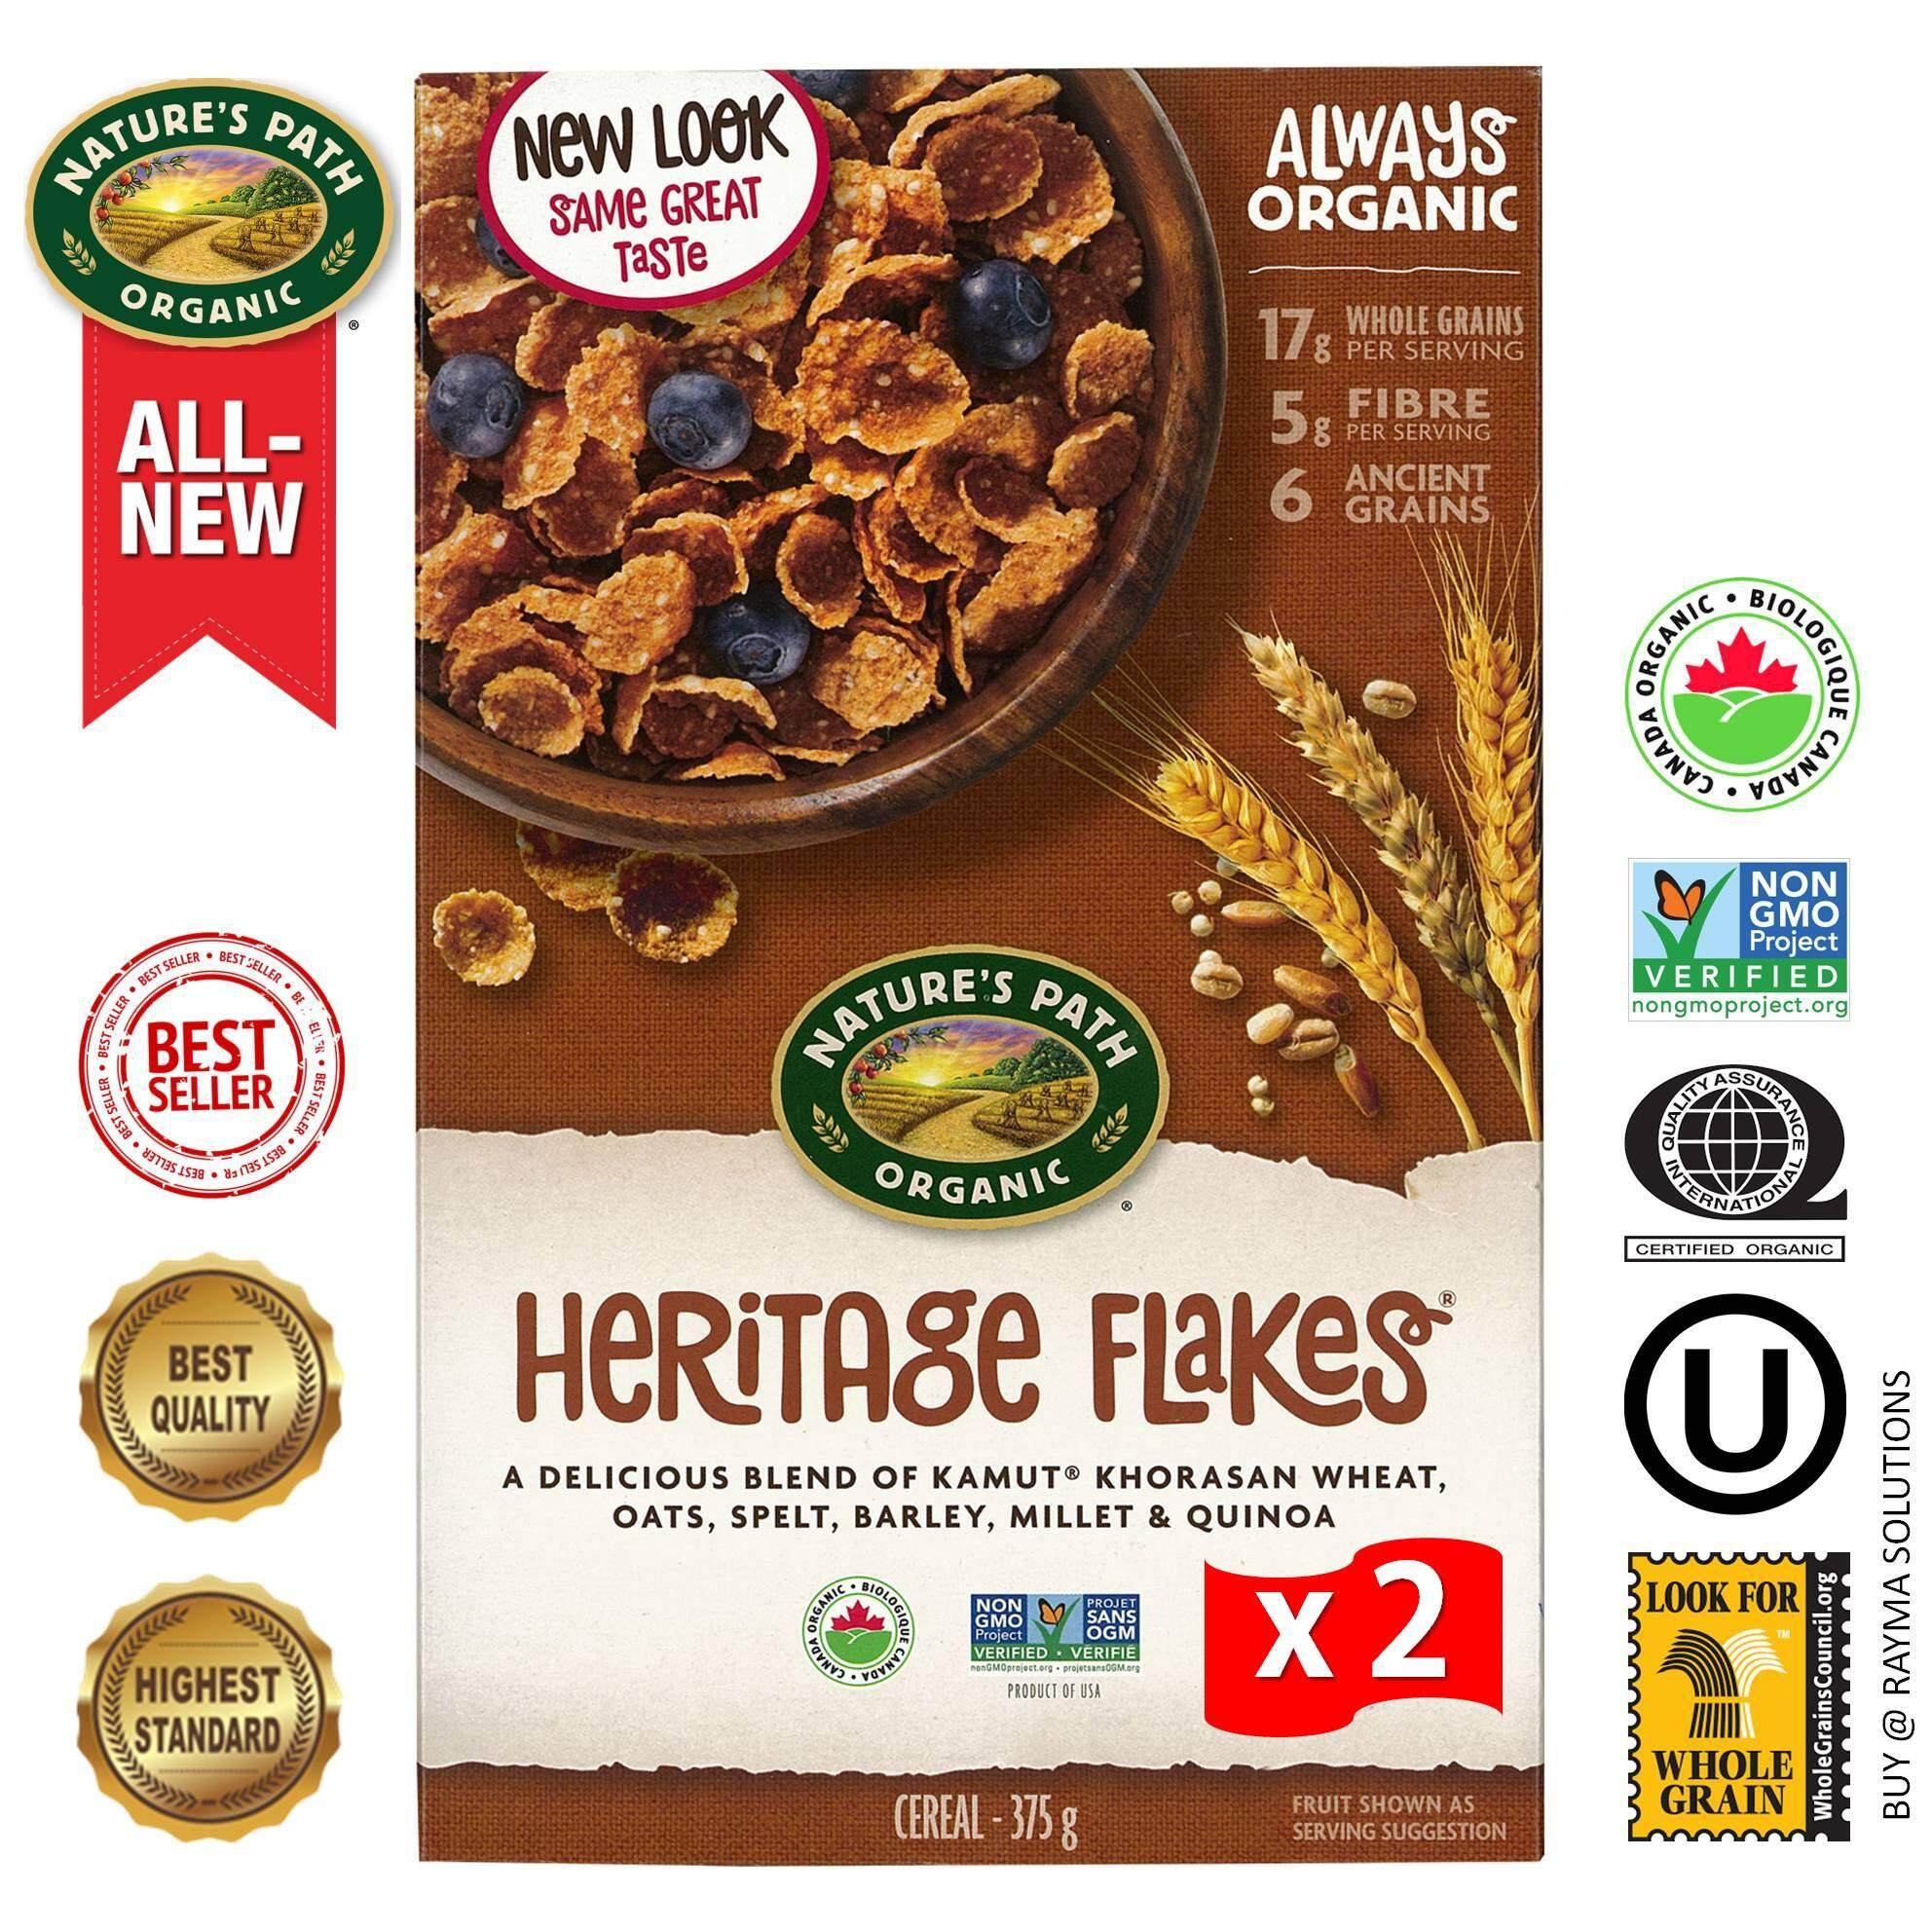 [$AVE More!] NATURE'S PATH ORGANIC Heritage Flakes, Multigrain Cereal, 375g - Twin Pack